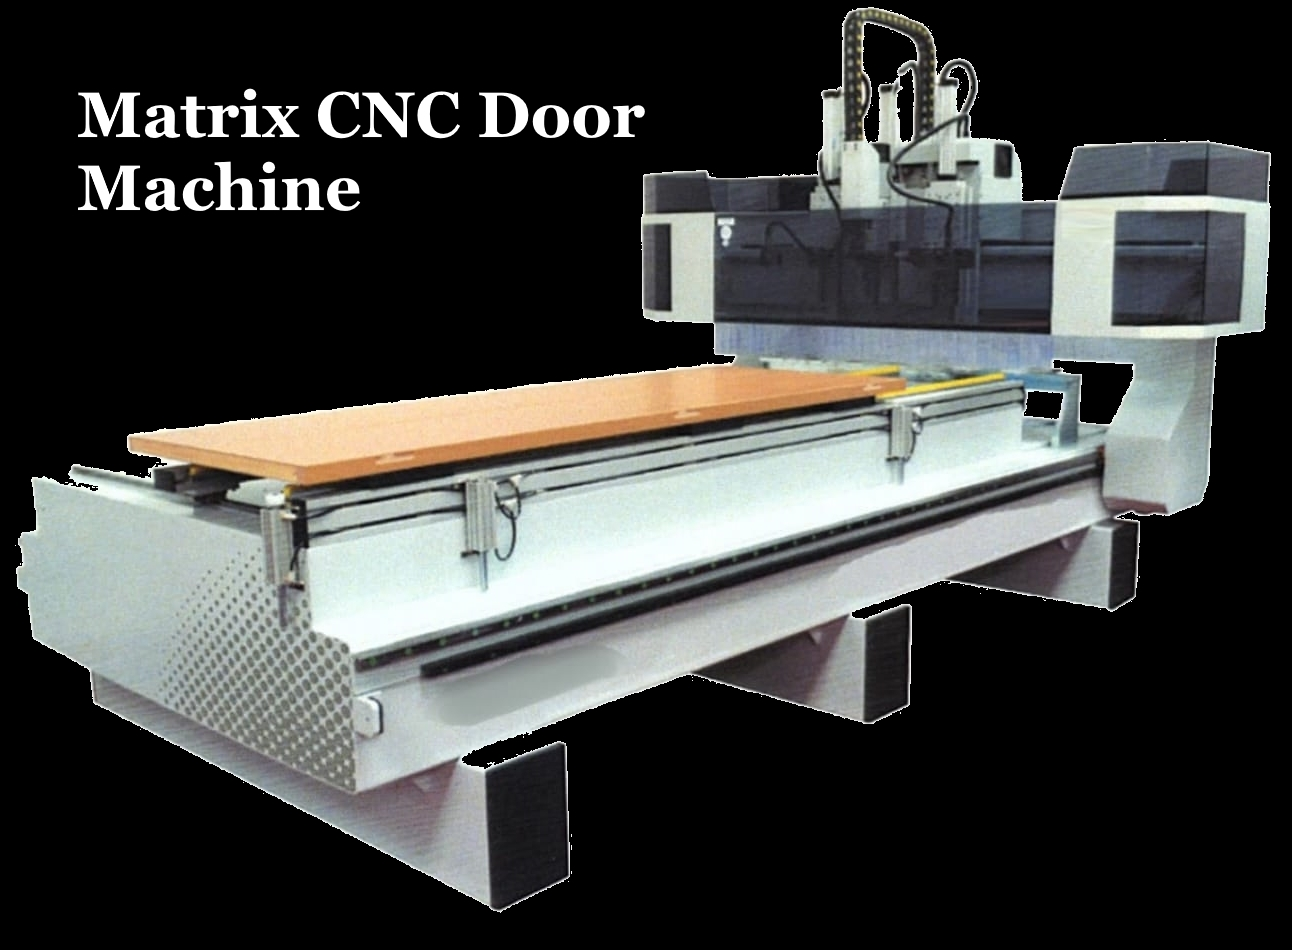 Matrix CNC Door